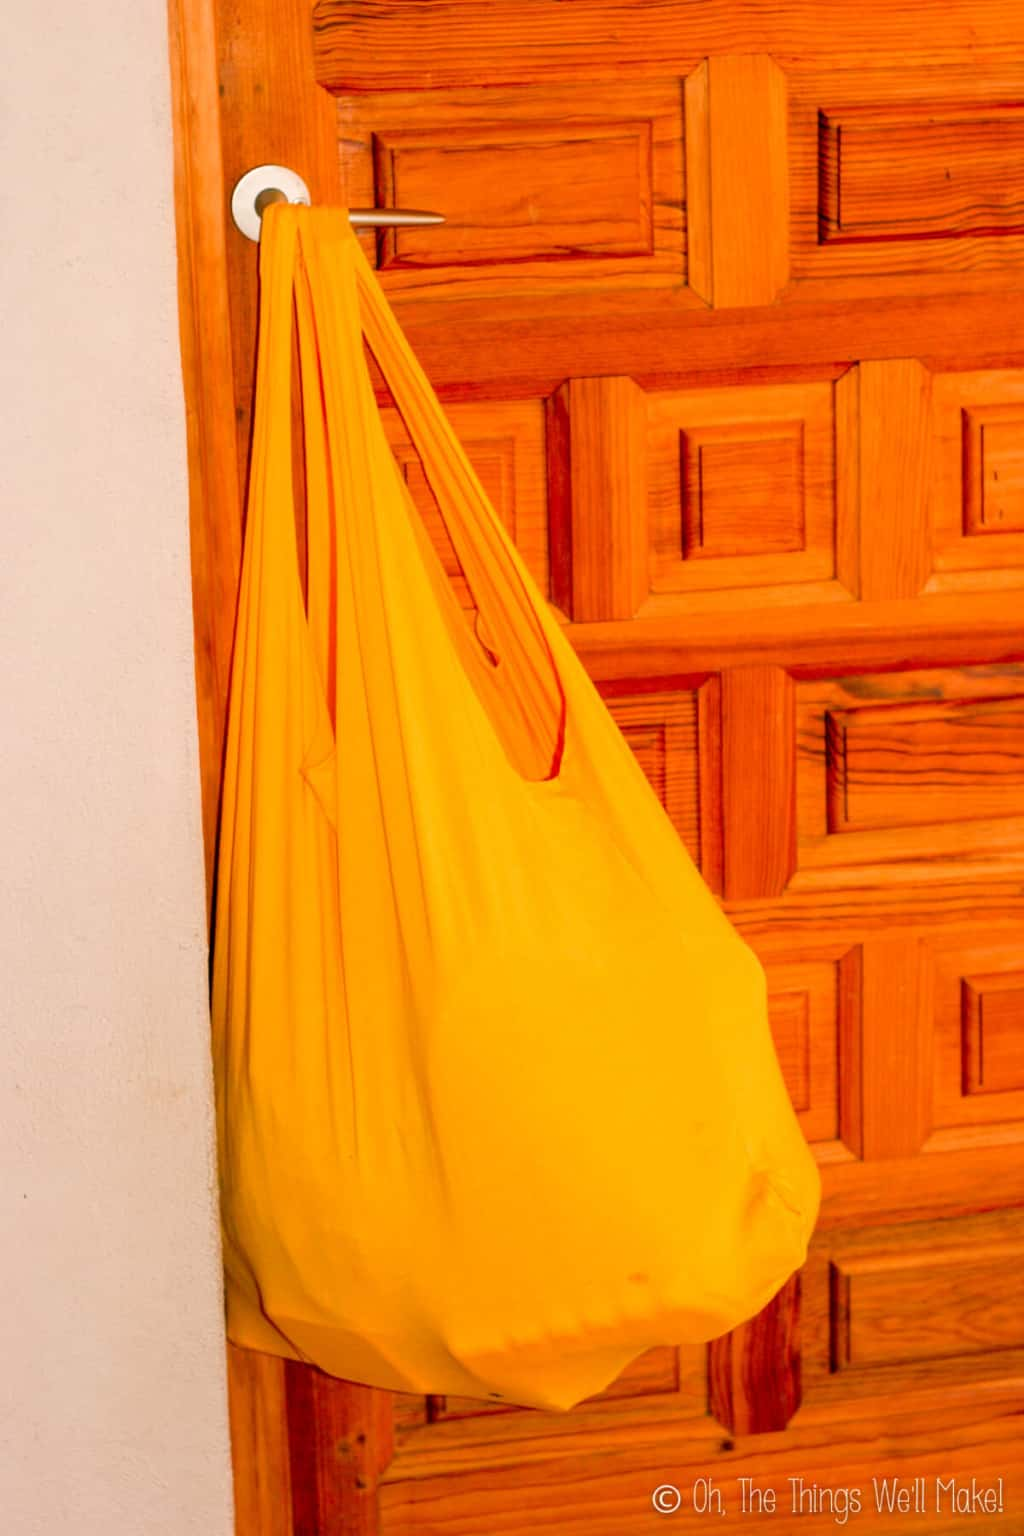 An orange t-shirt bag hanging on a door knob, filled with lots of heavy groceries.